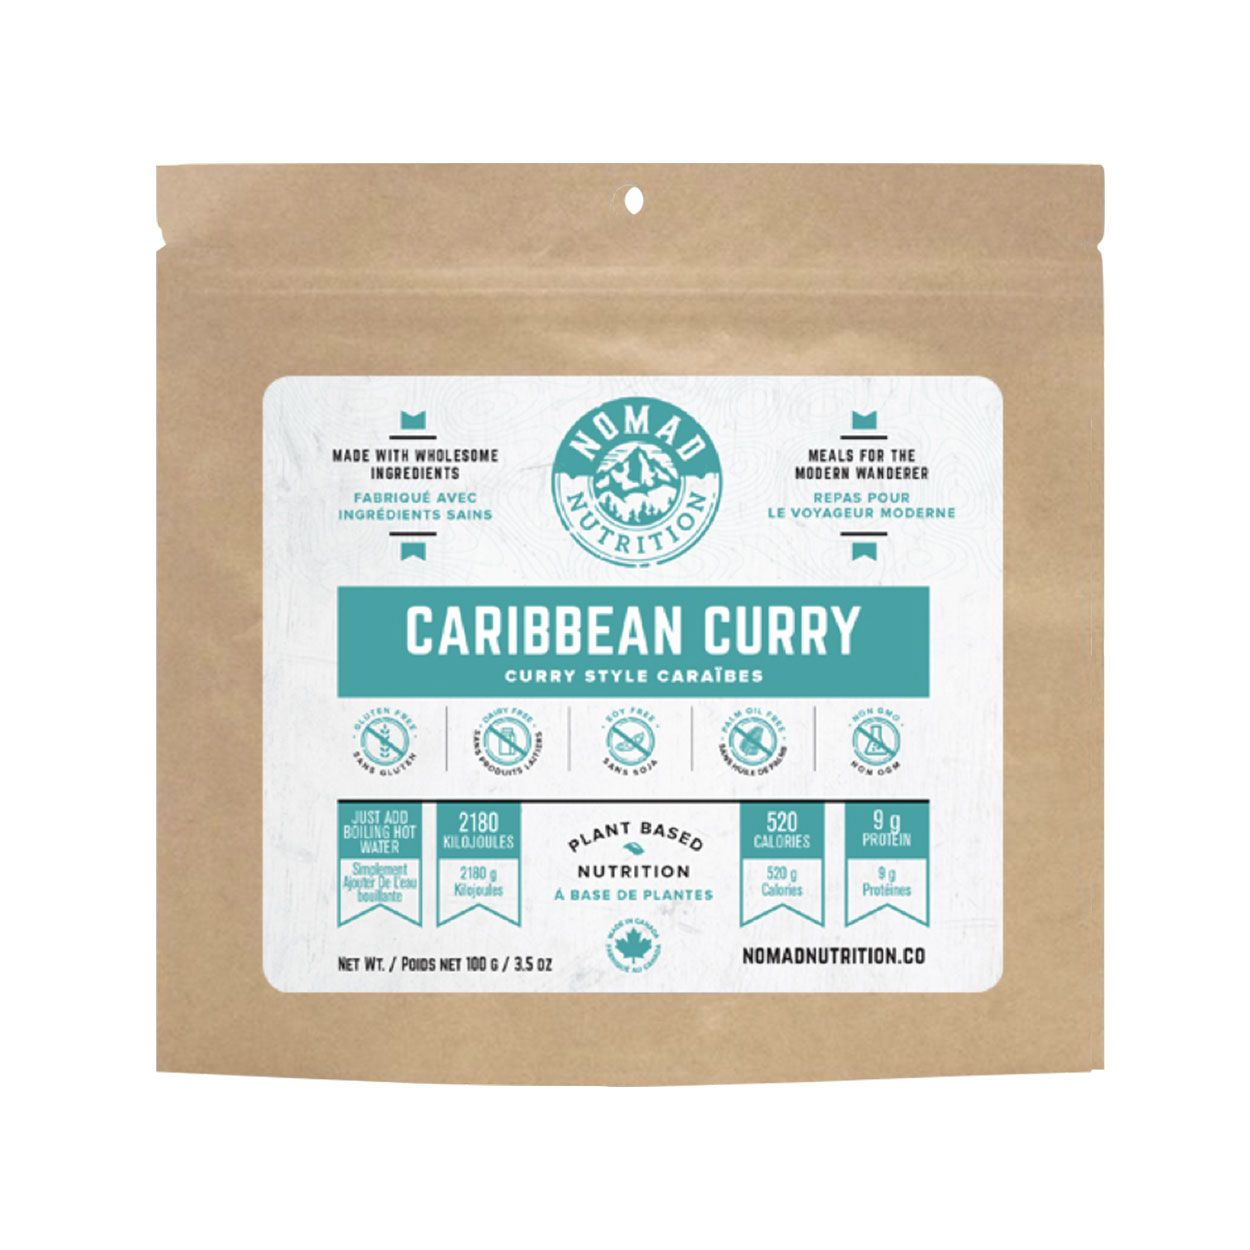 Carribean Curry